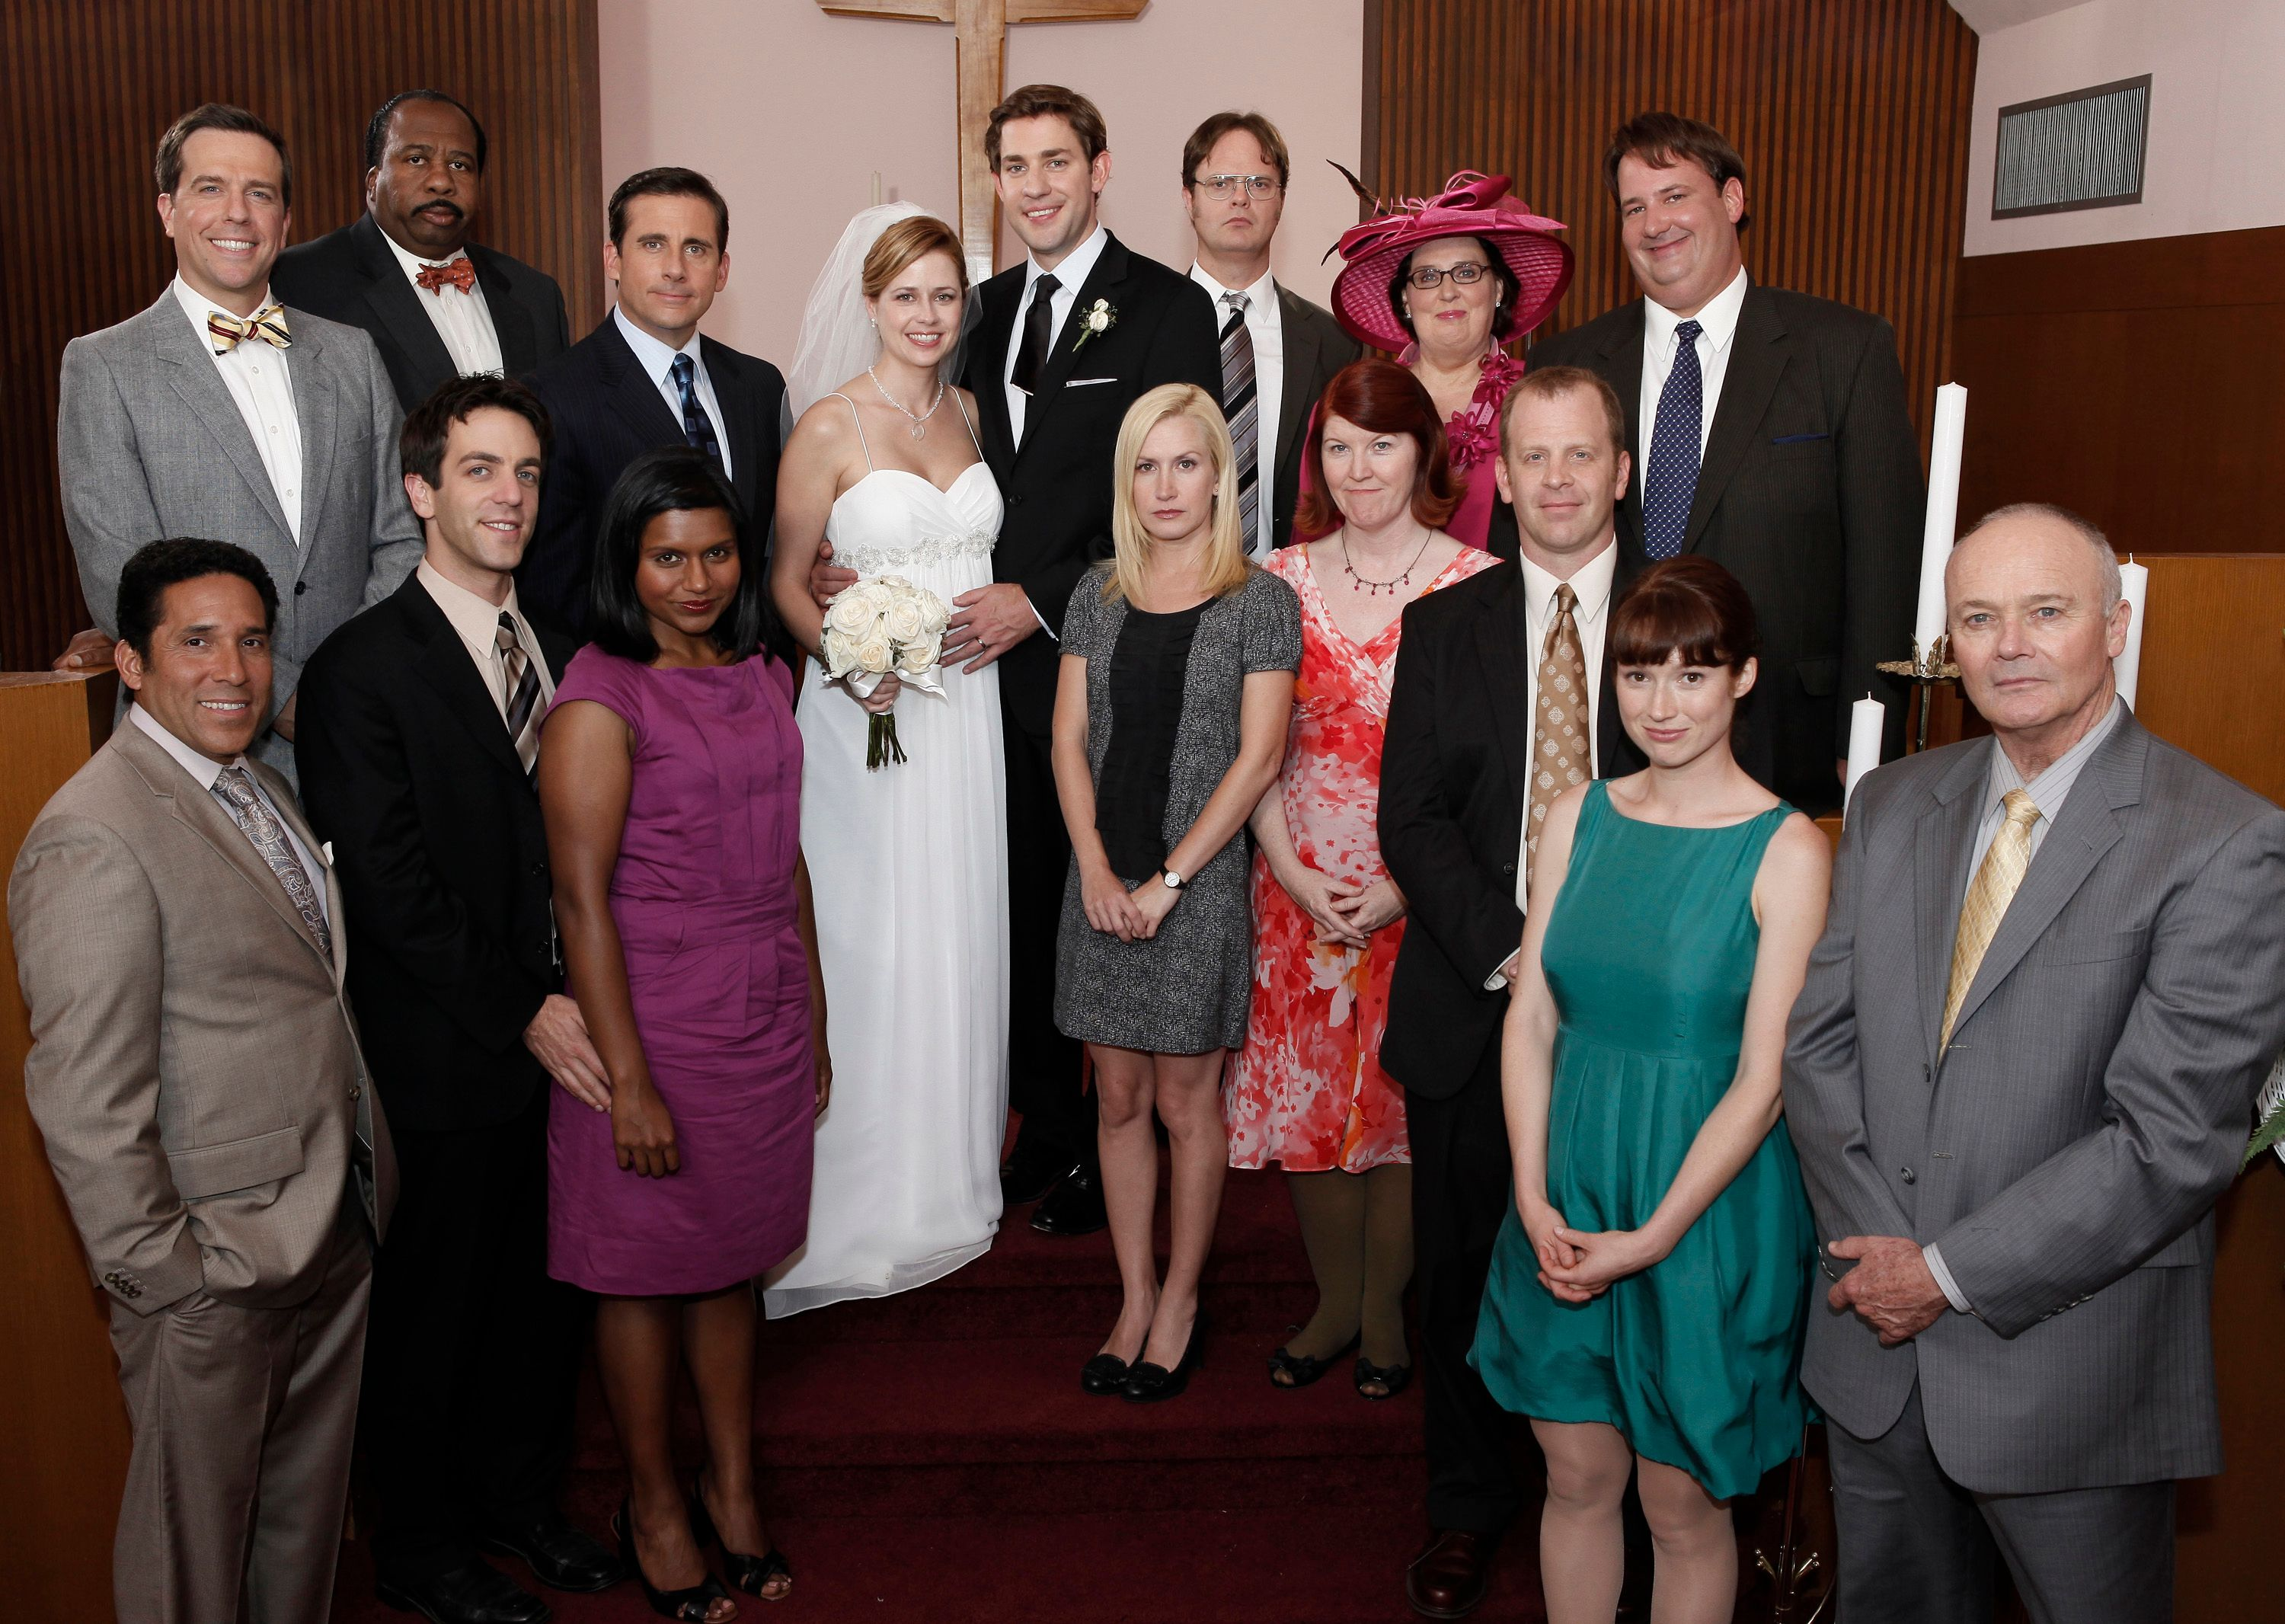 The entire office at Pam and Jim's Wedding